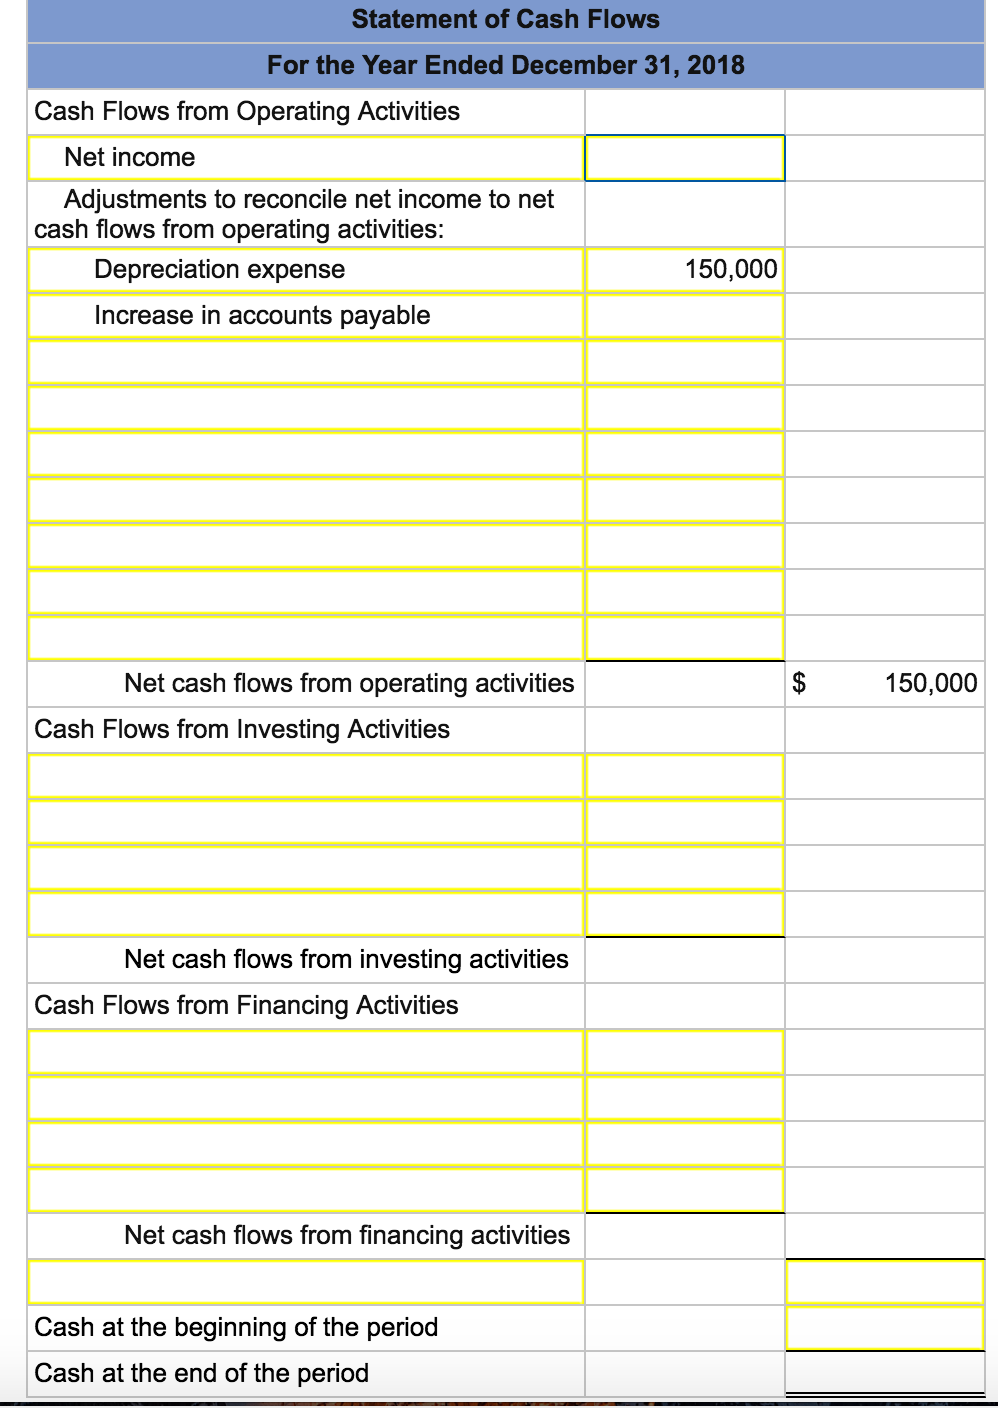 worksheet Net Income Appears On The Worksheet In The solved the balance sheet for plasma screens corporation along with additional information are provided below 2018